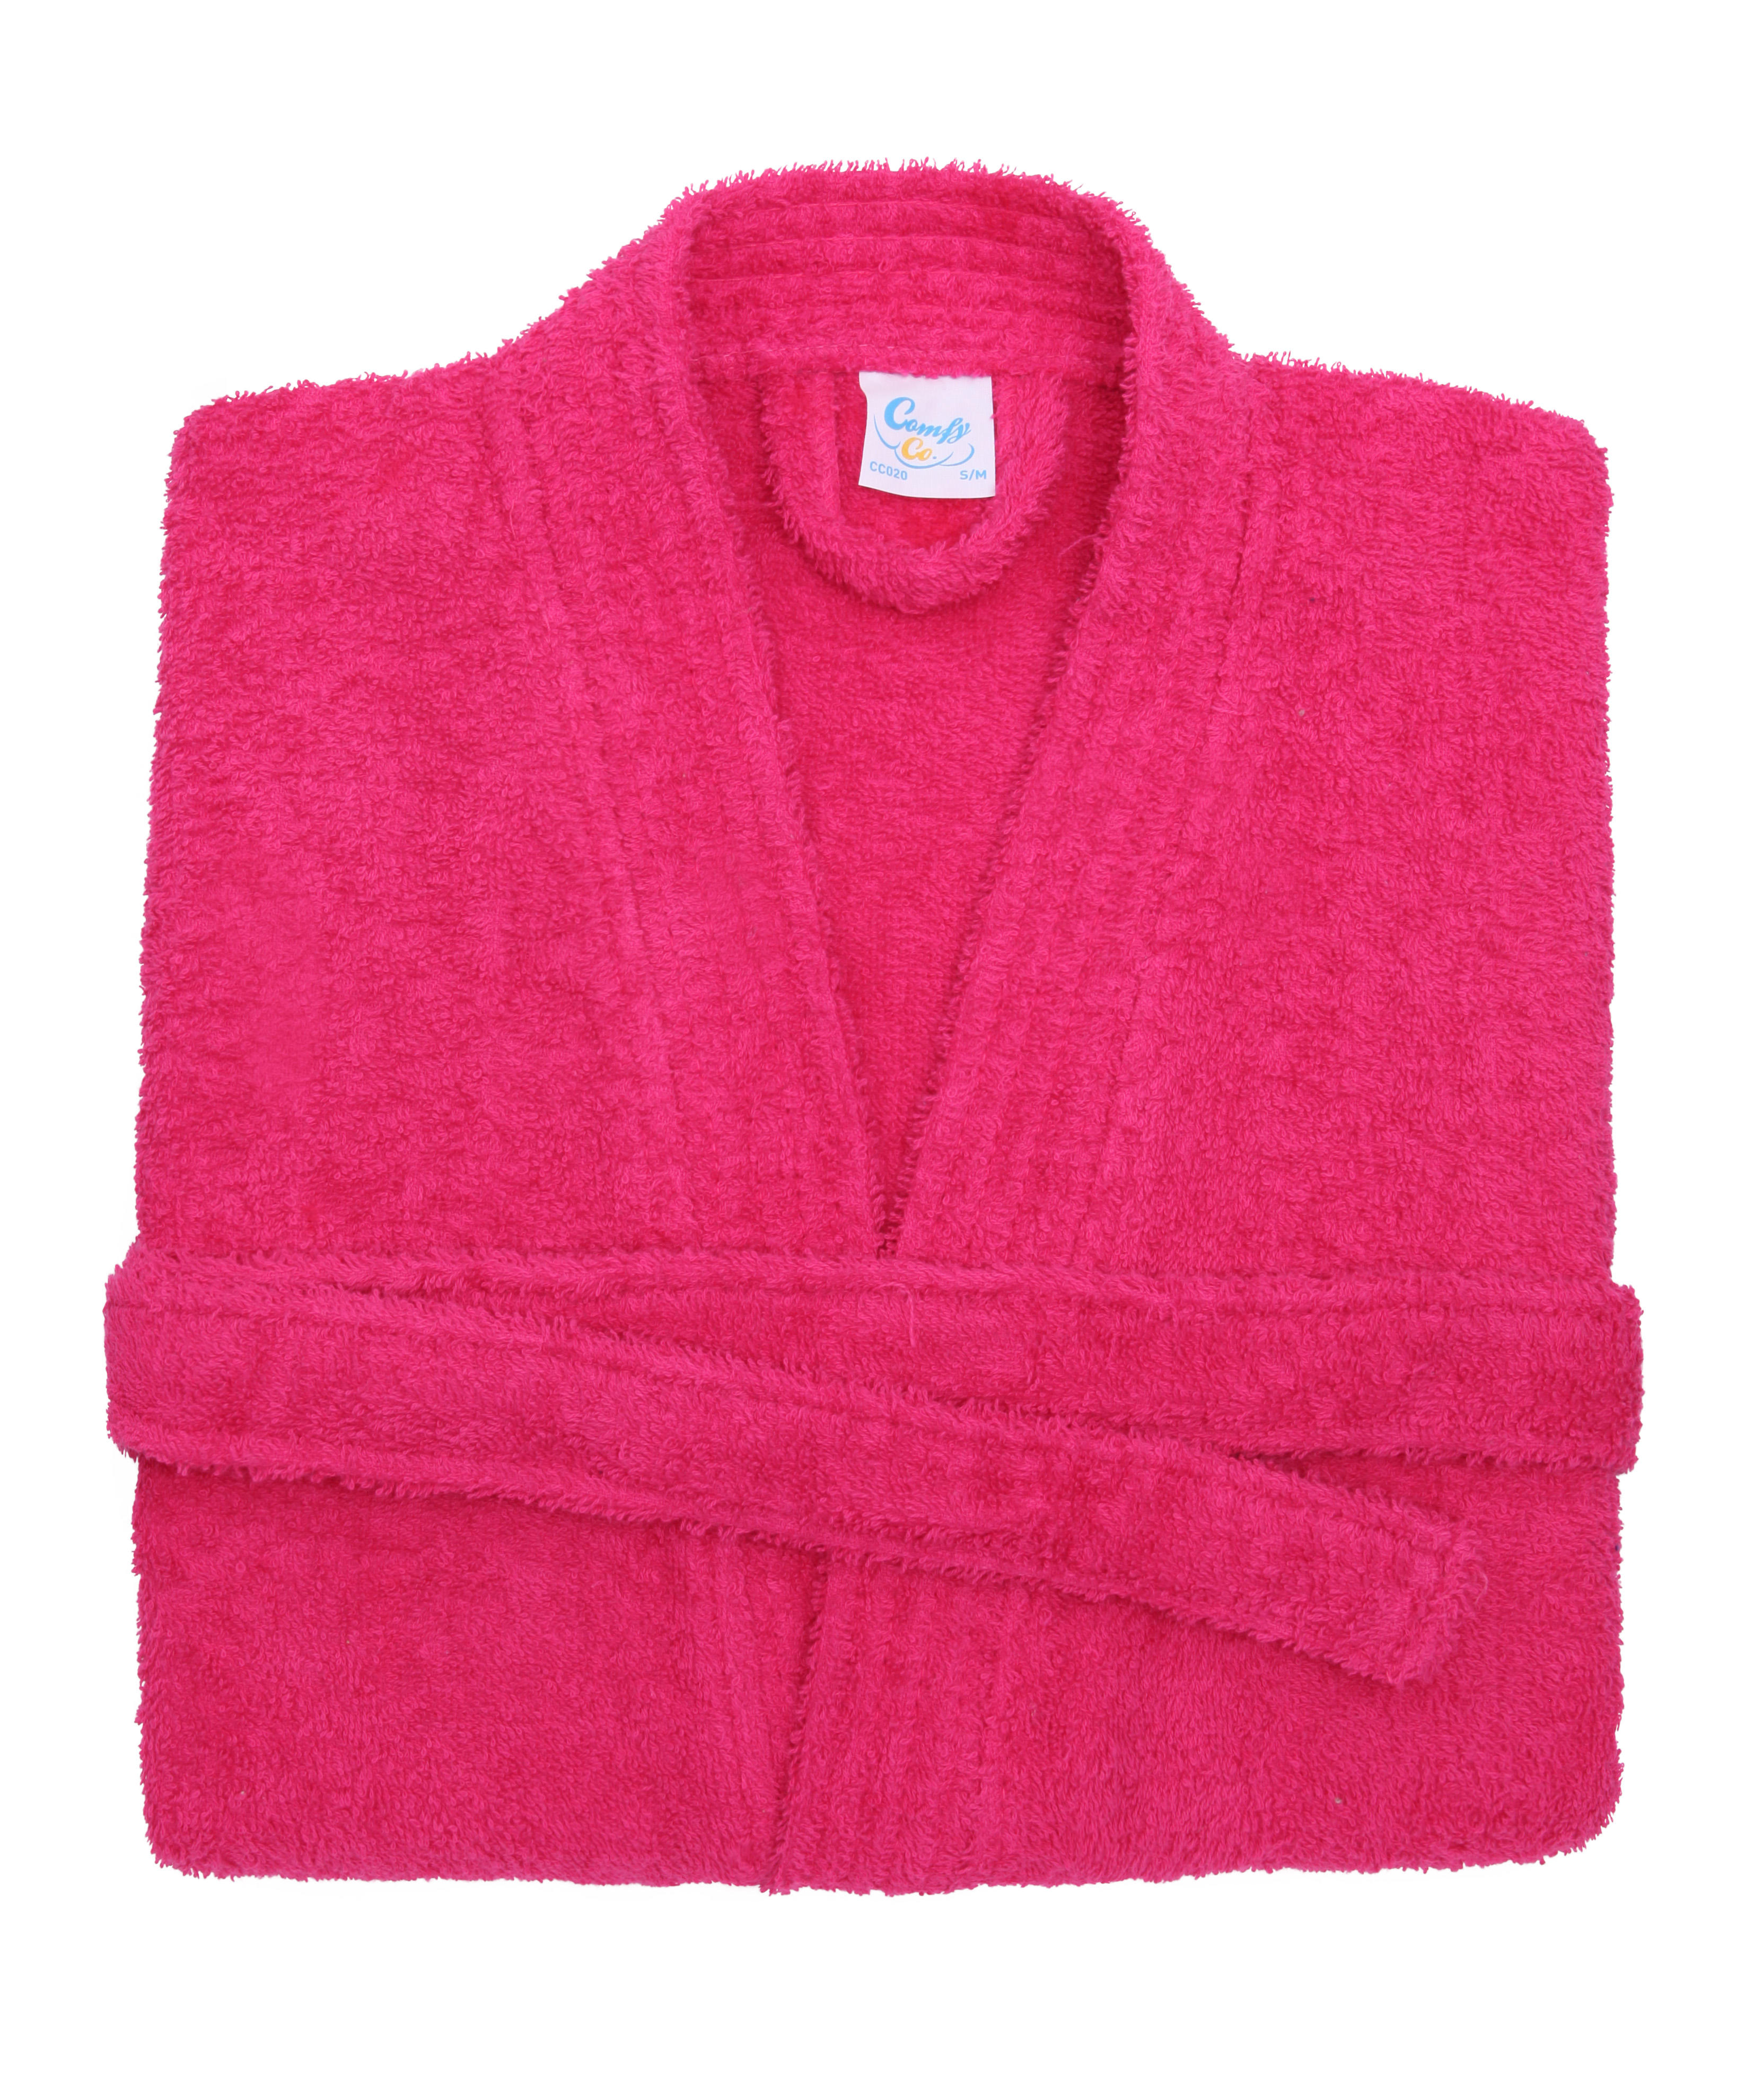 hot pink cotton towelling bath robe